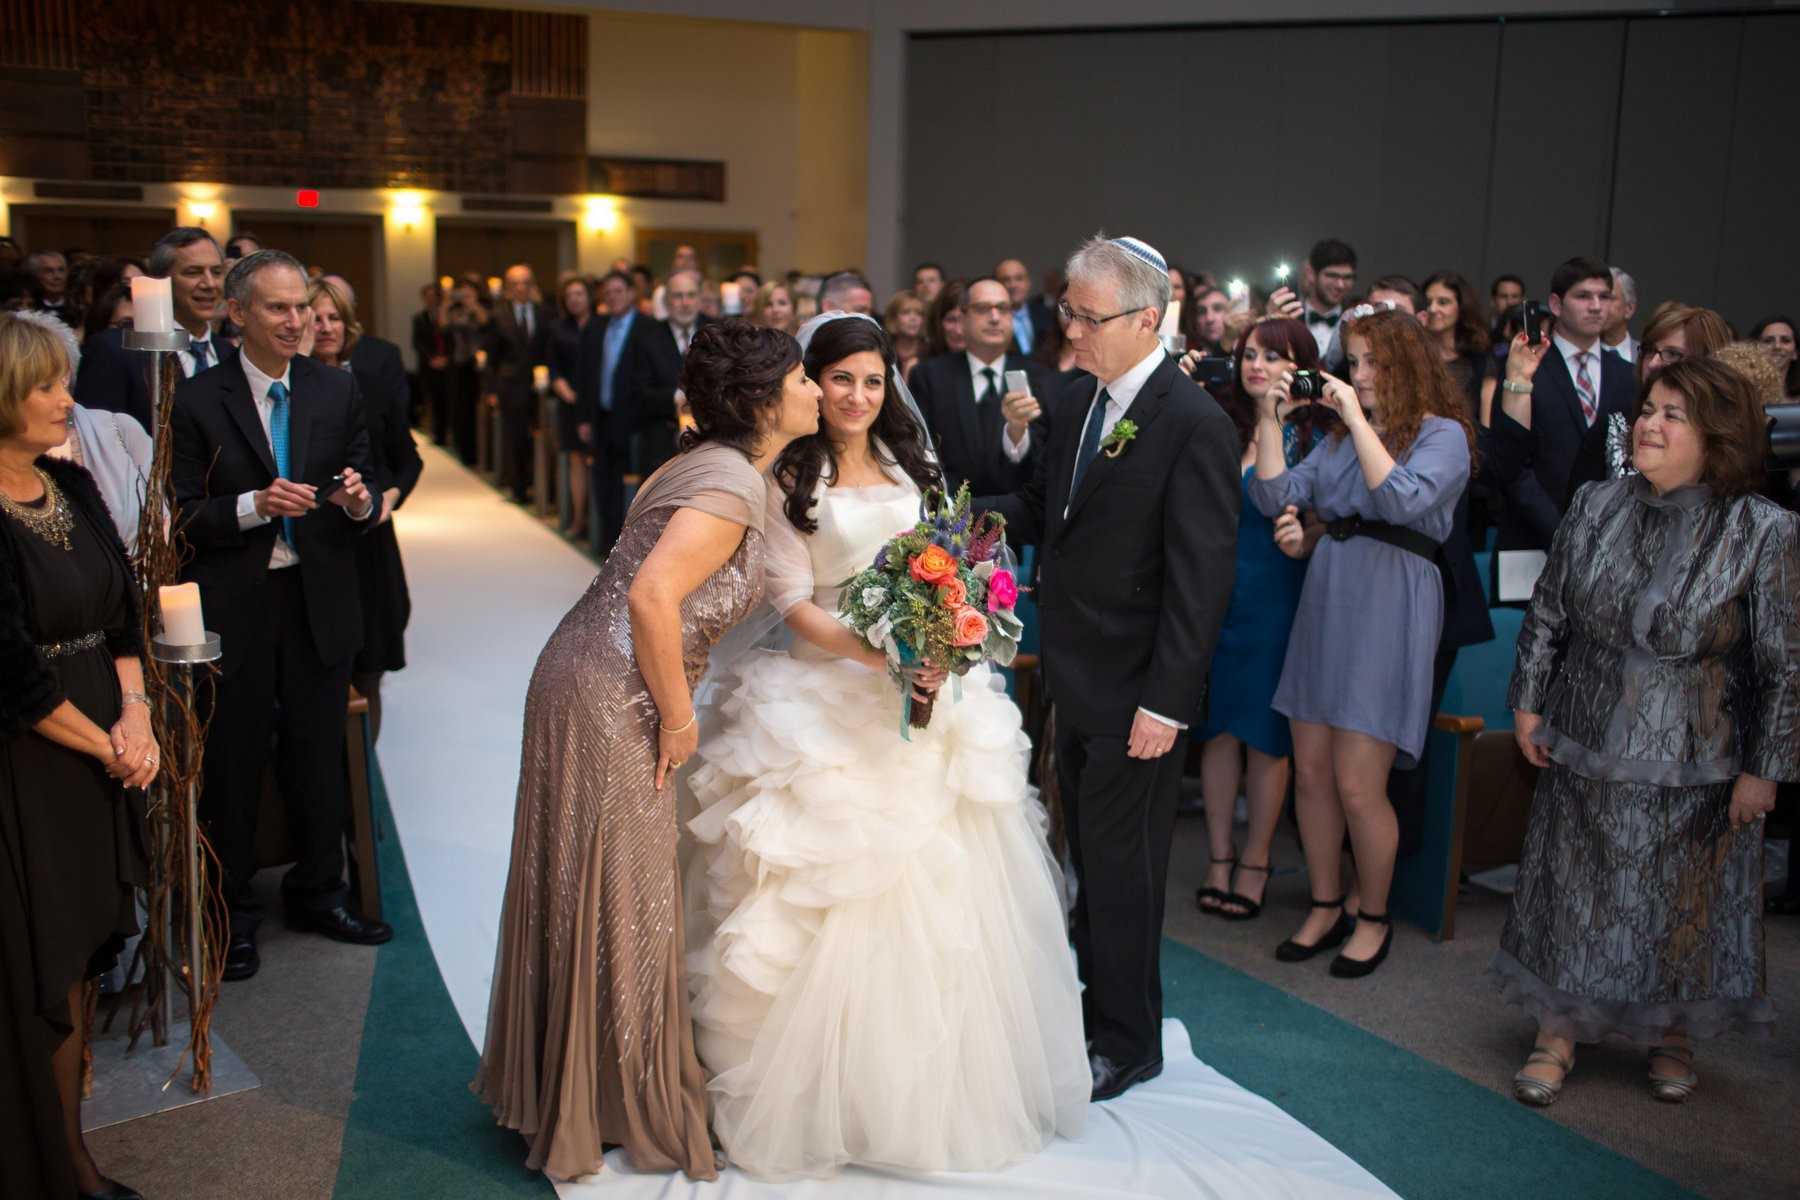 One or two photographers for your wedding? Second shooter or no second shooter?, Miami Wedding Photographers   Häring Photography, Indian Wedding Photographer in Florida, Best Muslim, Hindu - South East Asian Wedding Photographers